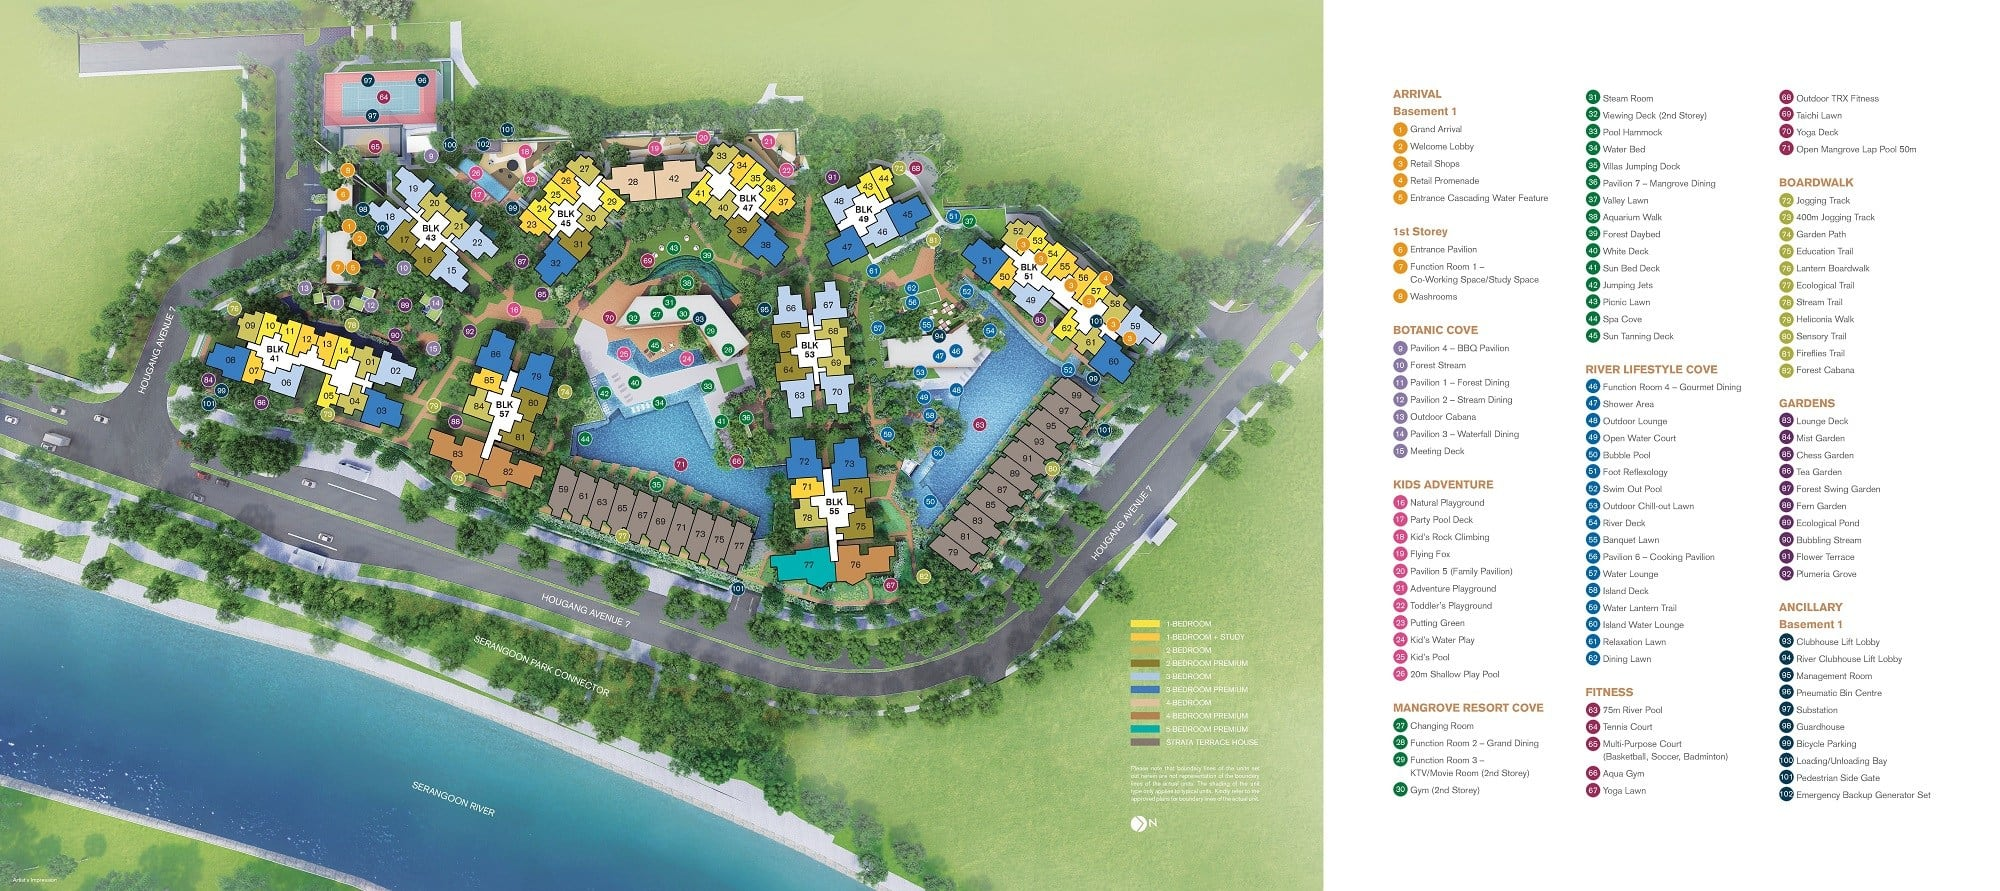 Riverfront Residences sitemap